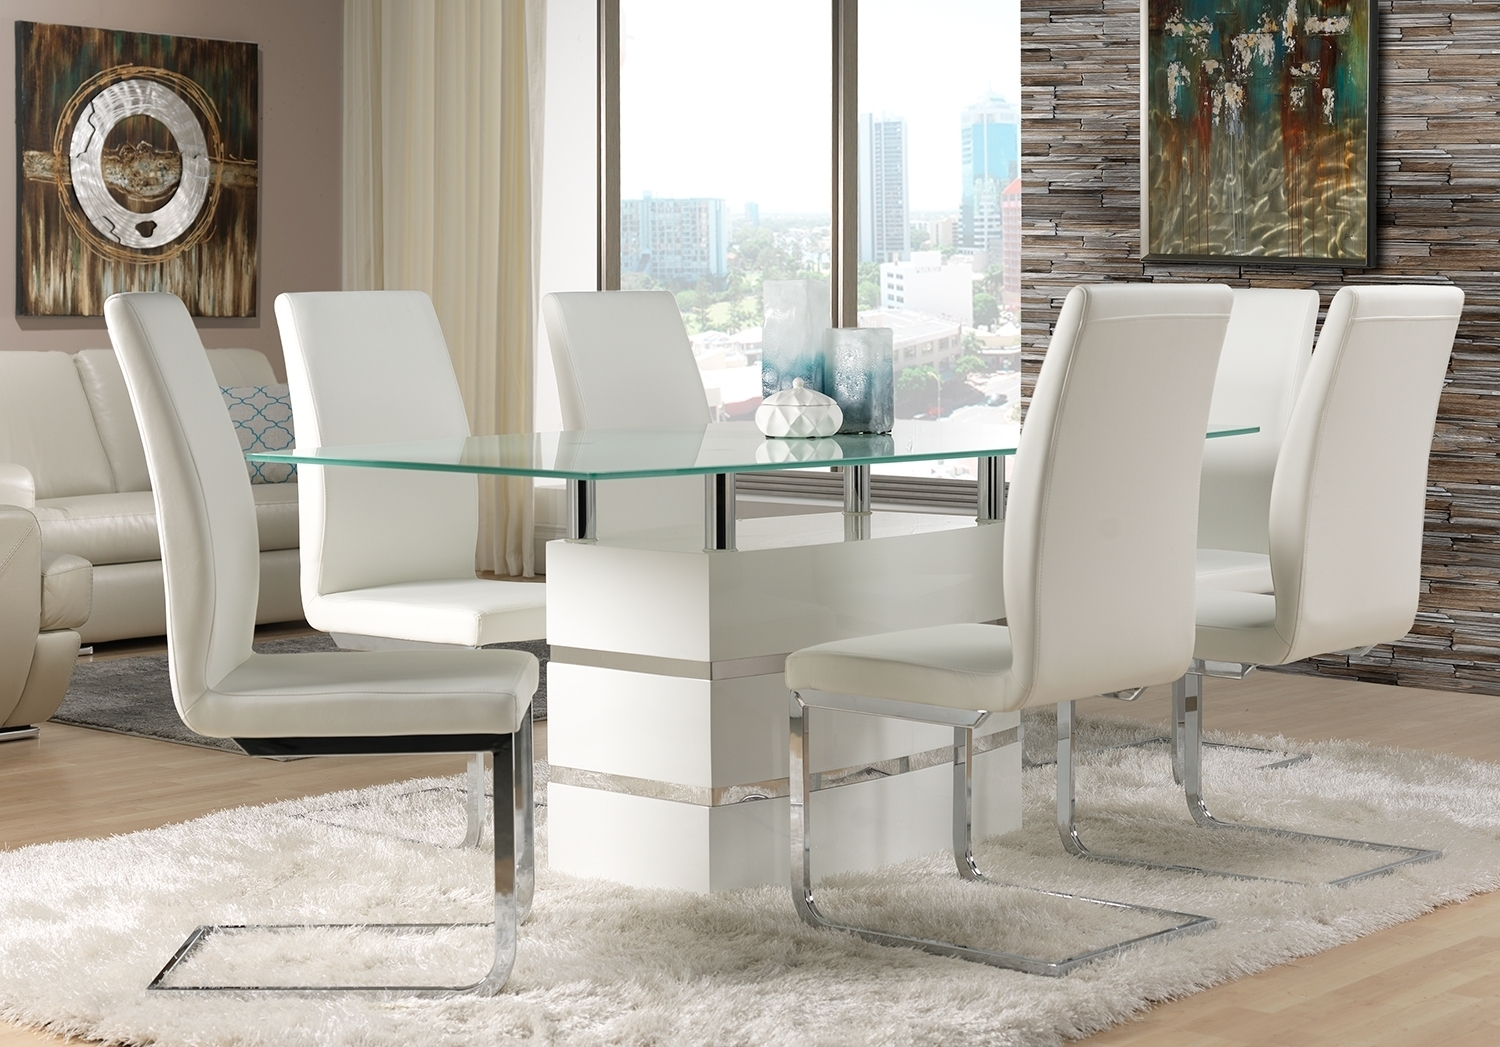 Chair Fabulous Glass Dining Table And White Leather Dining Chair Pertaining To Most Popular Leon Dining Tables (Image 1 of 20)